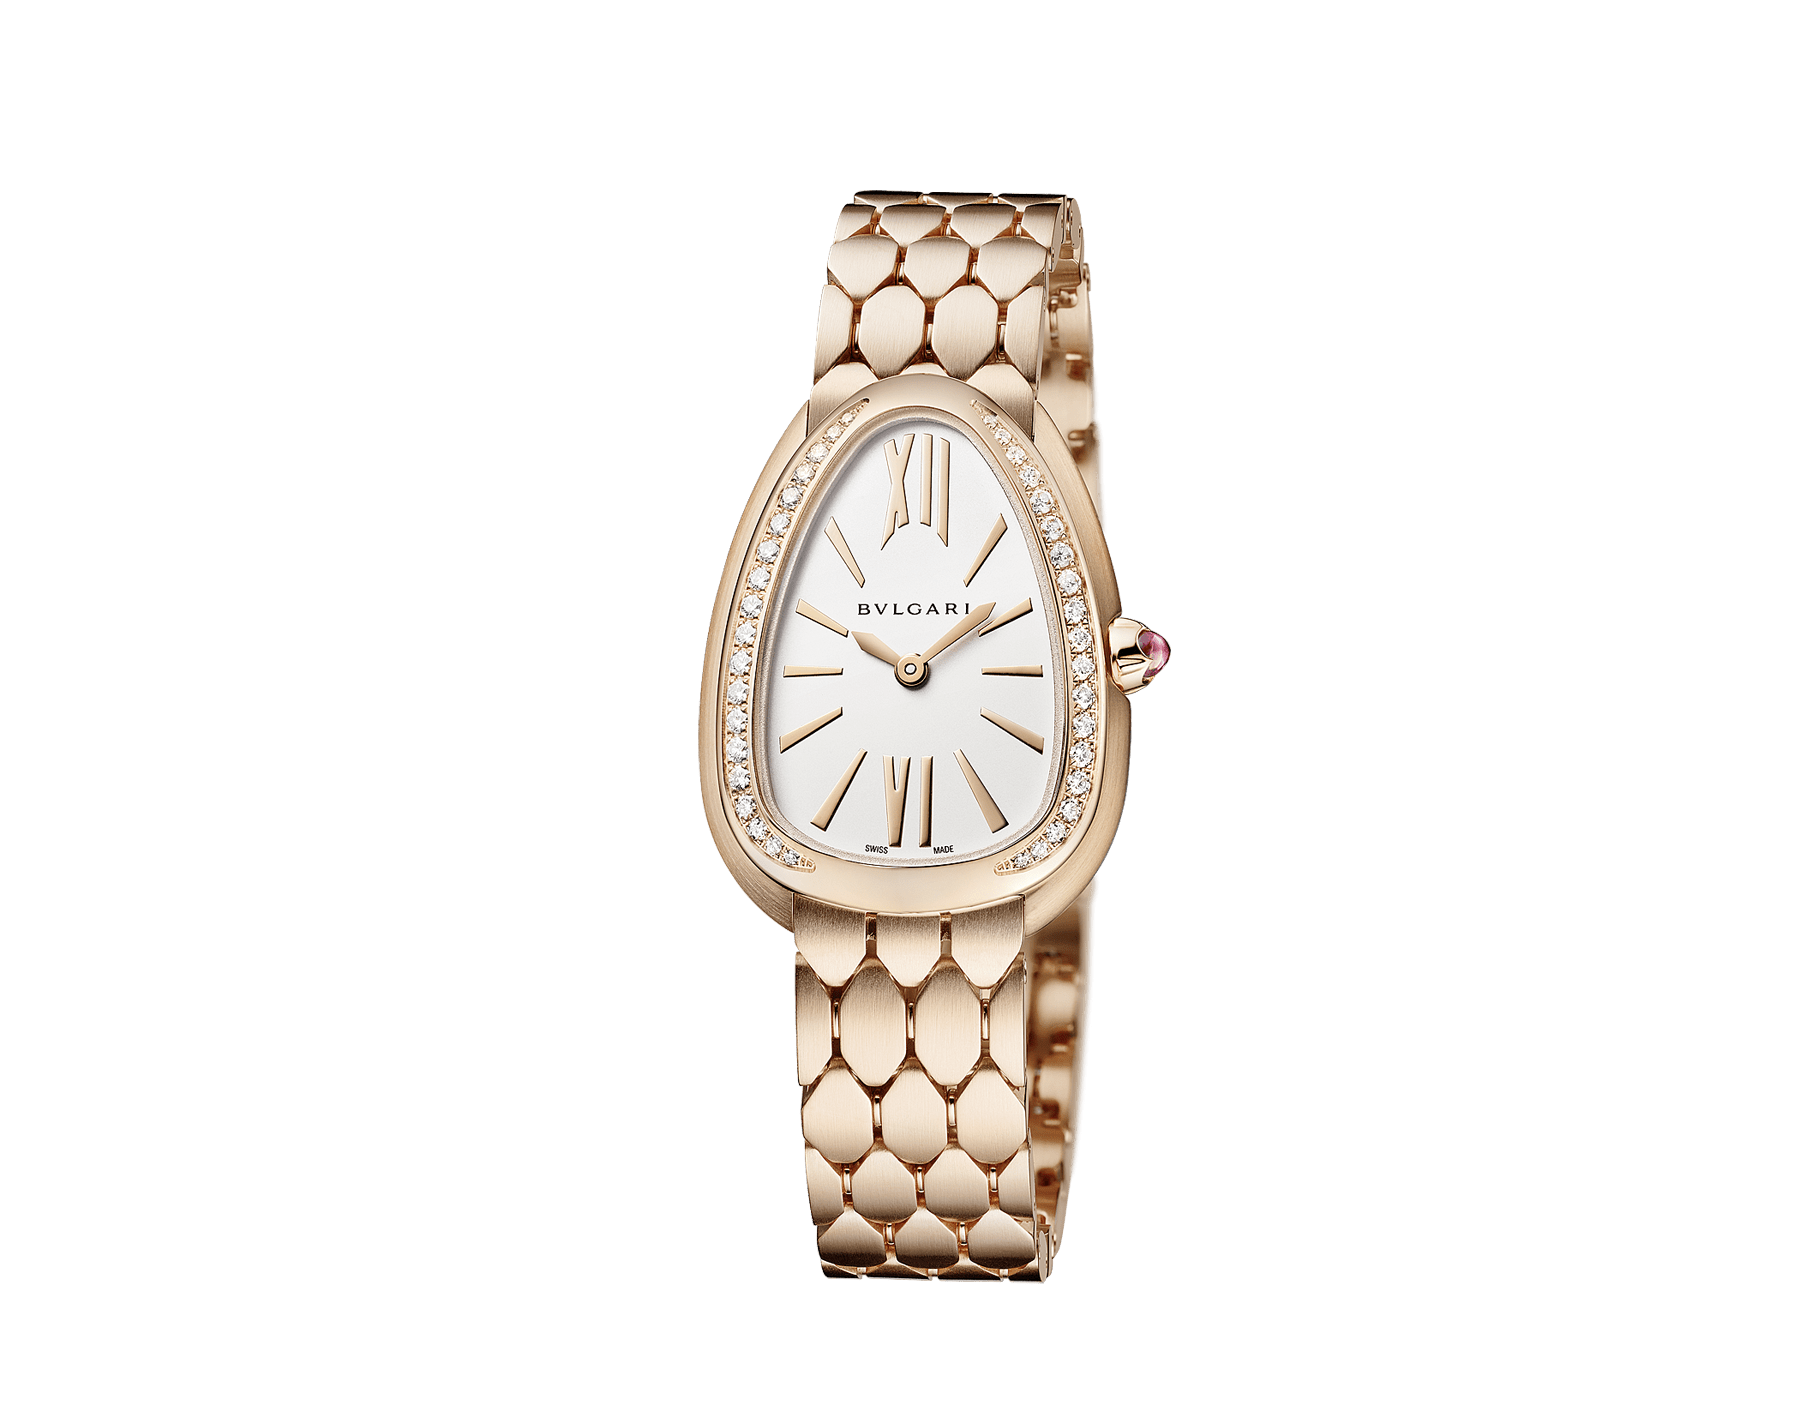 Serpenti Seduttori watch with 18 kt rose gold case, 18 kt rose gold bezel set with diamonds, white silver opaline dial and brushed 18 kt rose gold bracelet. 103169 image 2